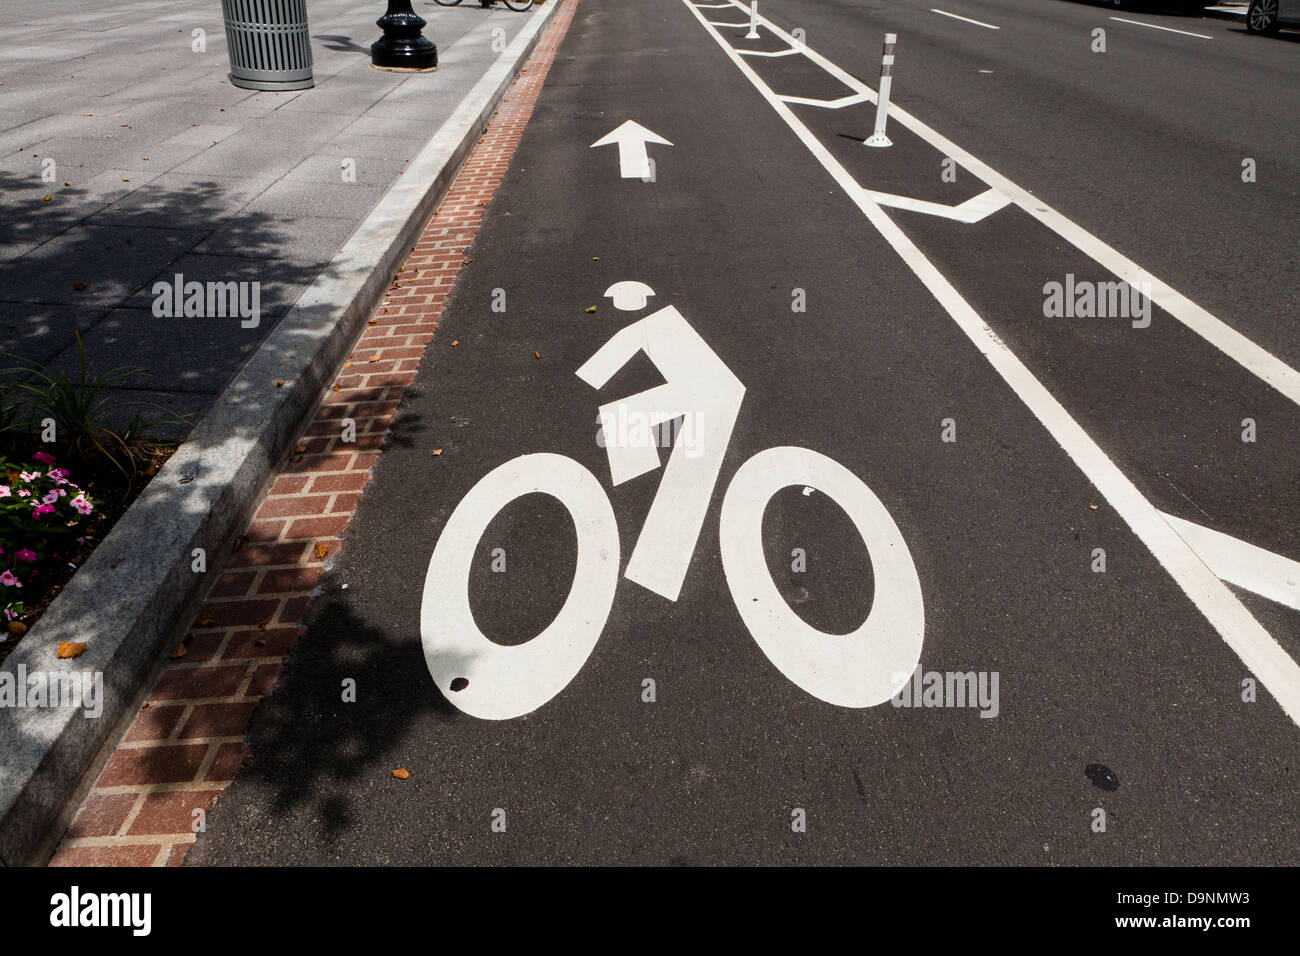 Designated bike lane - Washington, DC USA - Stock Image